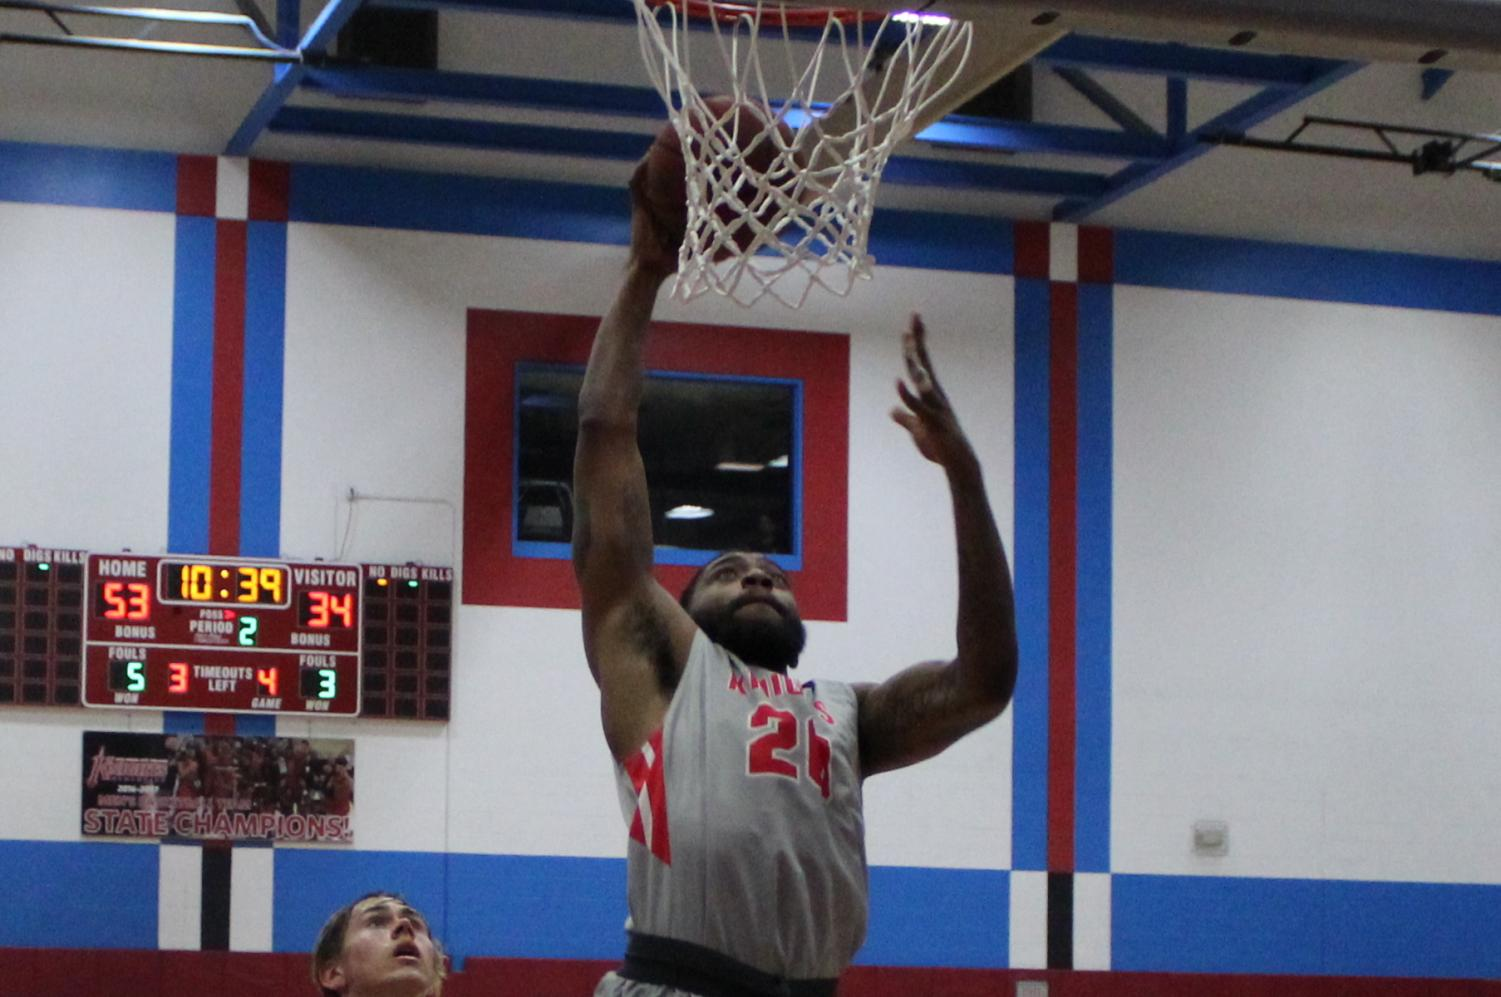 Dantrell Anderson goes up high to dunk the ball in the Knights' 75-49 win over Grossmont. By Jonny Rico/City Times